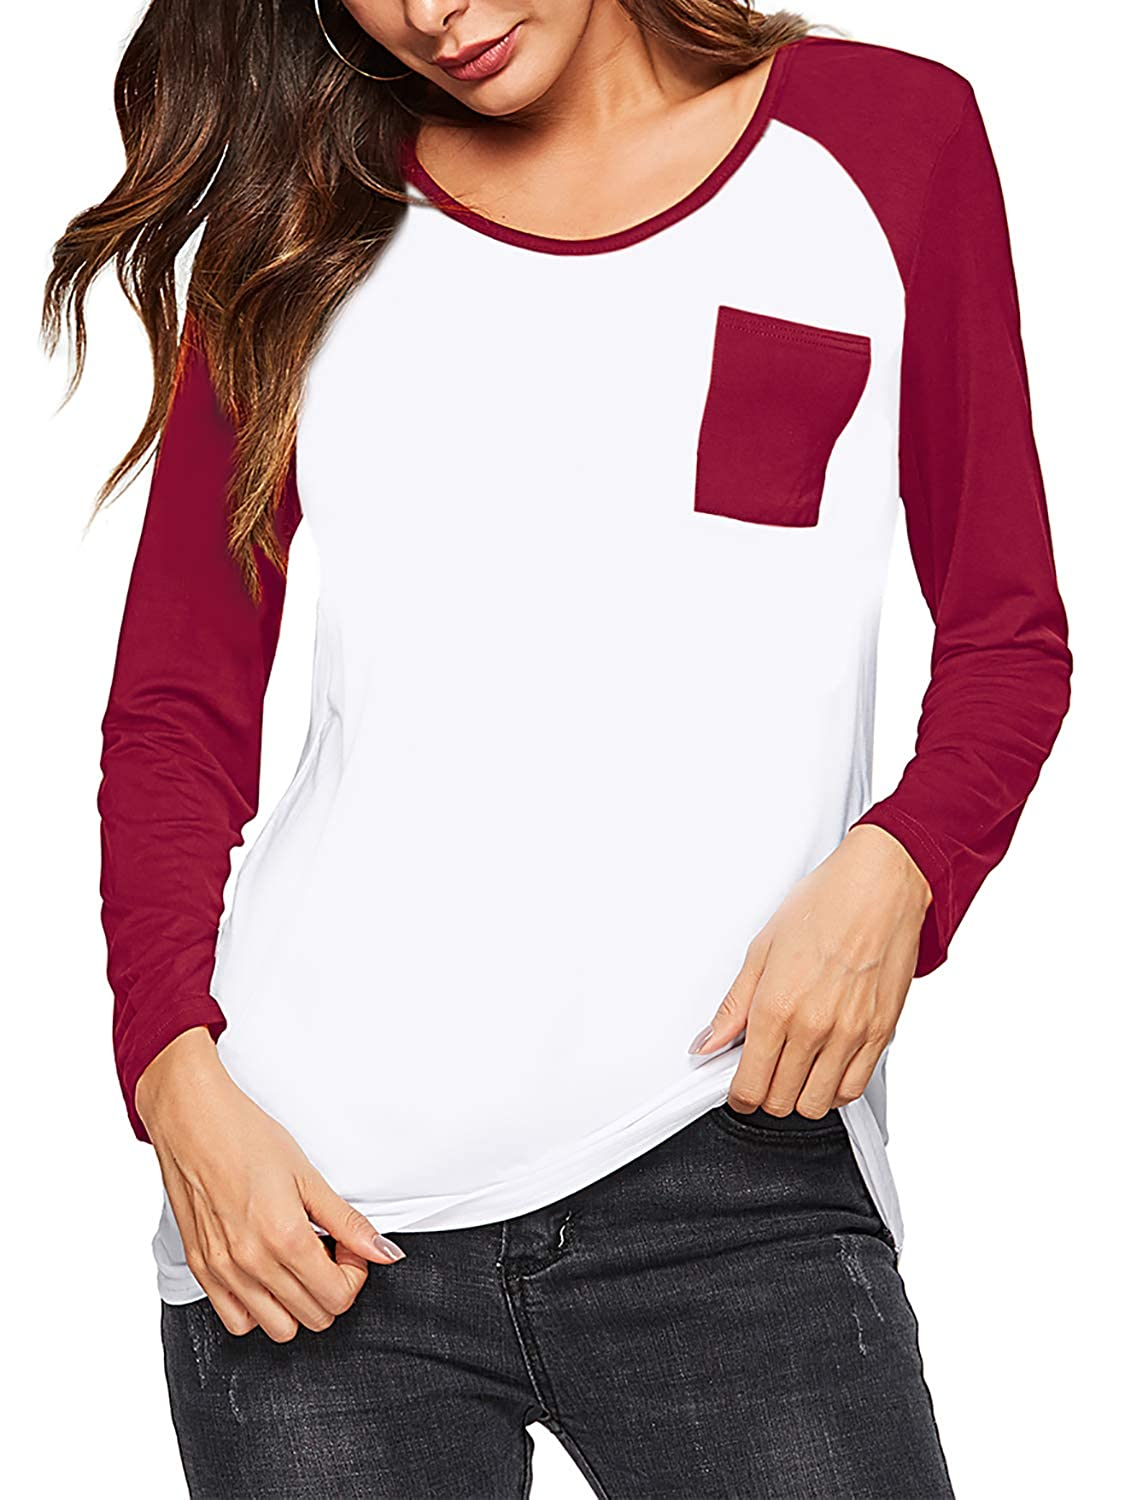 b0fbfde2e Long sleeve raglan shirt with crew neckline, color block, front pocket,  pullover style. Casual relax fit baseball t-shirts, perfect for spring,  summer, ...